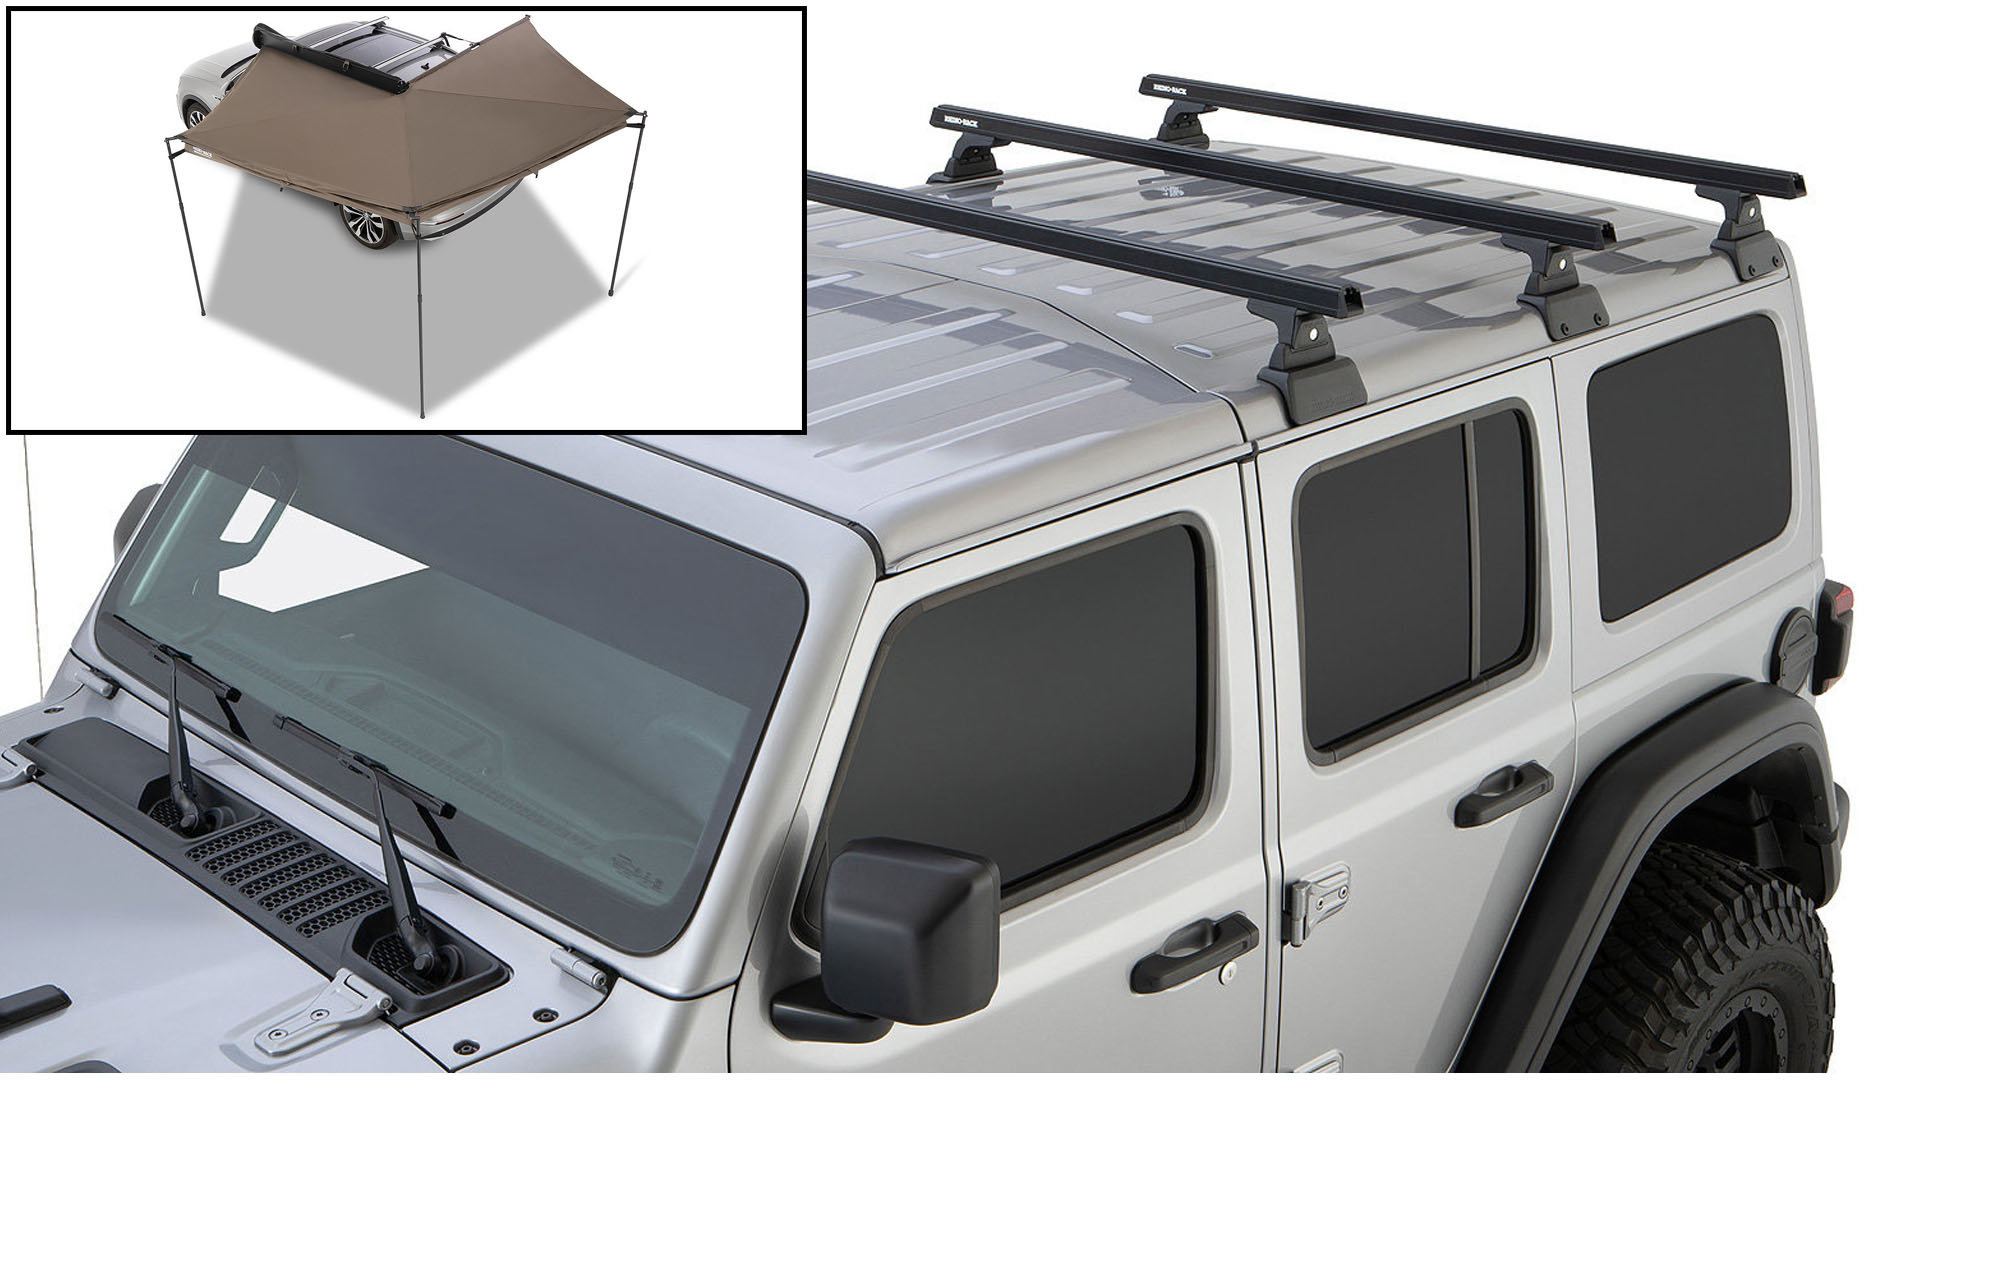 rhino rack 3 bar backbone roof rack with quick mount legs for 18 20 jeep wrangler jl unlimited with hardtop